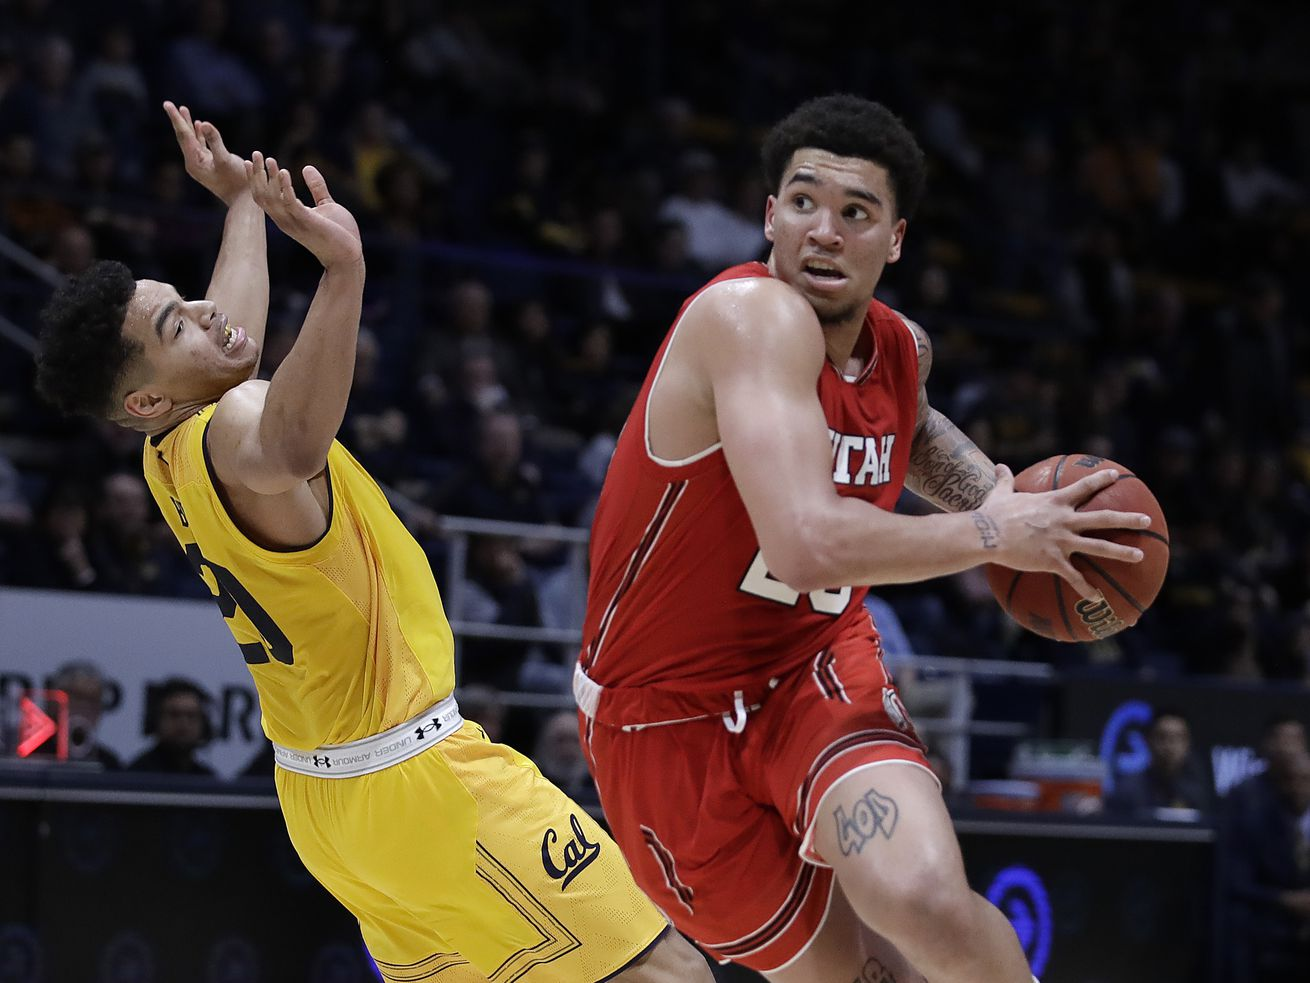 Texas Longhorns land highly sought-after Utah transfer Timmy Allen, a two-time all-Pac-12 selection and the Utes' leading scorer